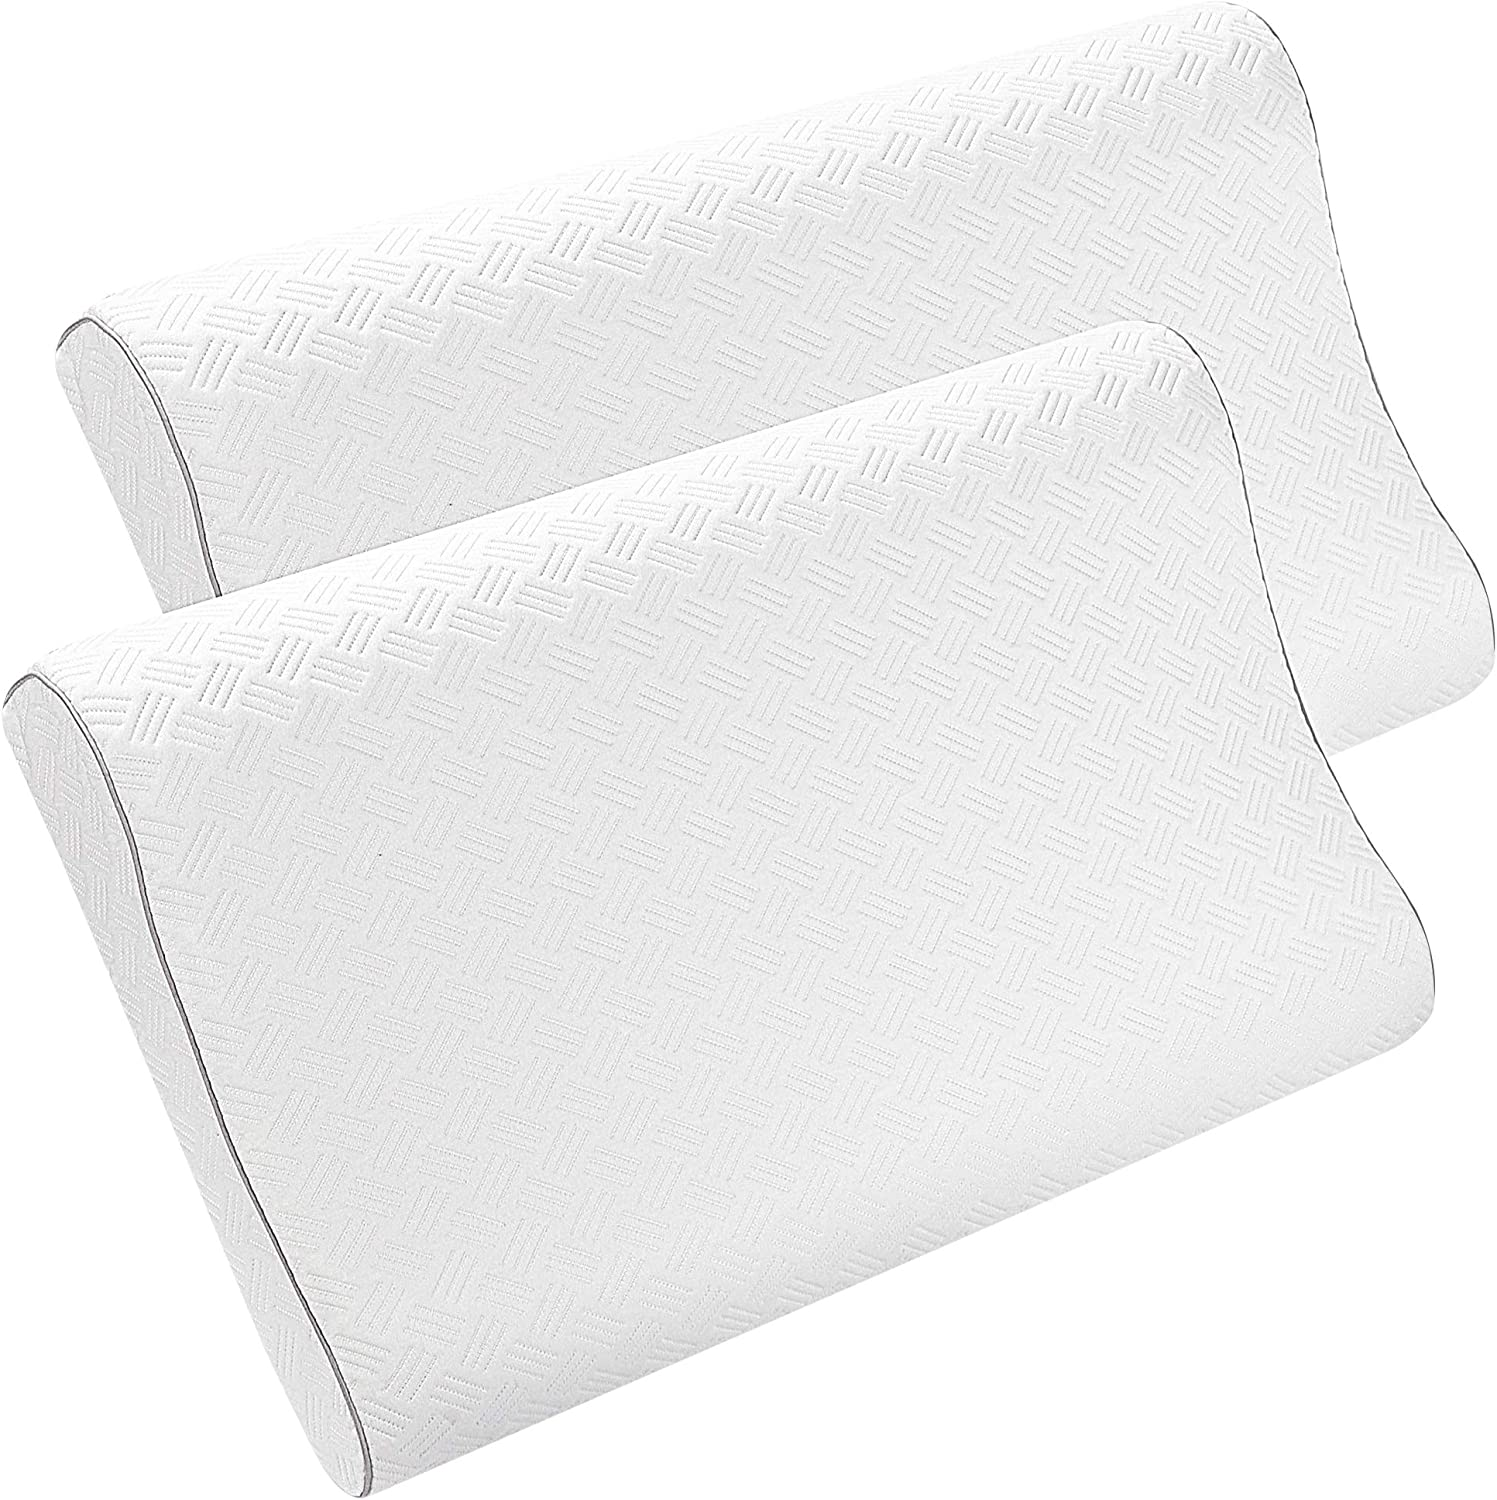 PiccoCasa 2 Pack Cooling Gel Memory Foam Pillow, Cervical Pillow for Neck Pain, Contour Pillow Support for Back, Stomach, Side Sleepers, Pillows for Sleeping, CertiPUR-US, King Size